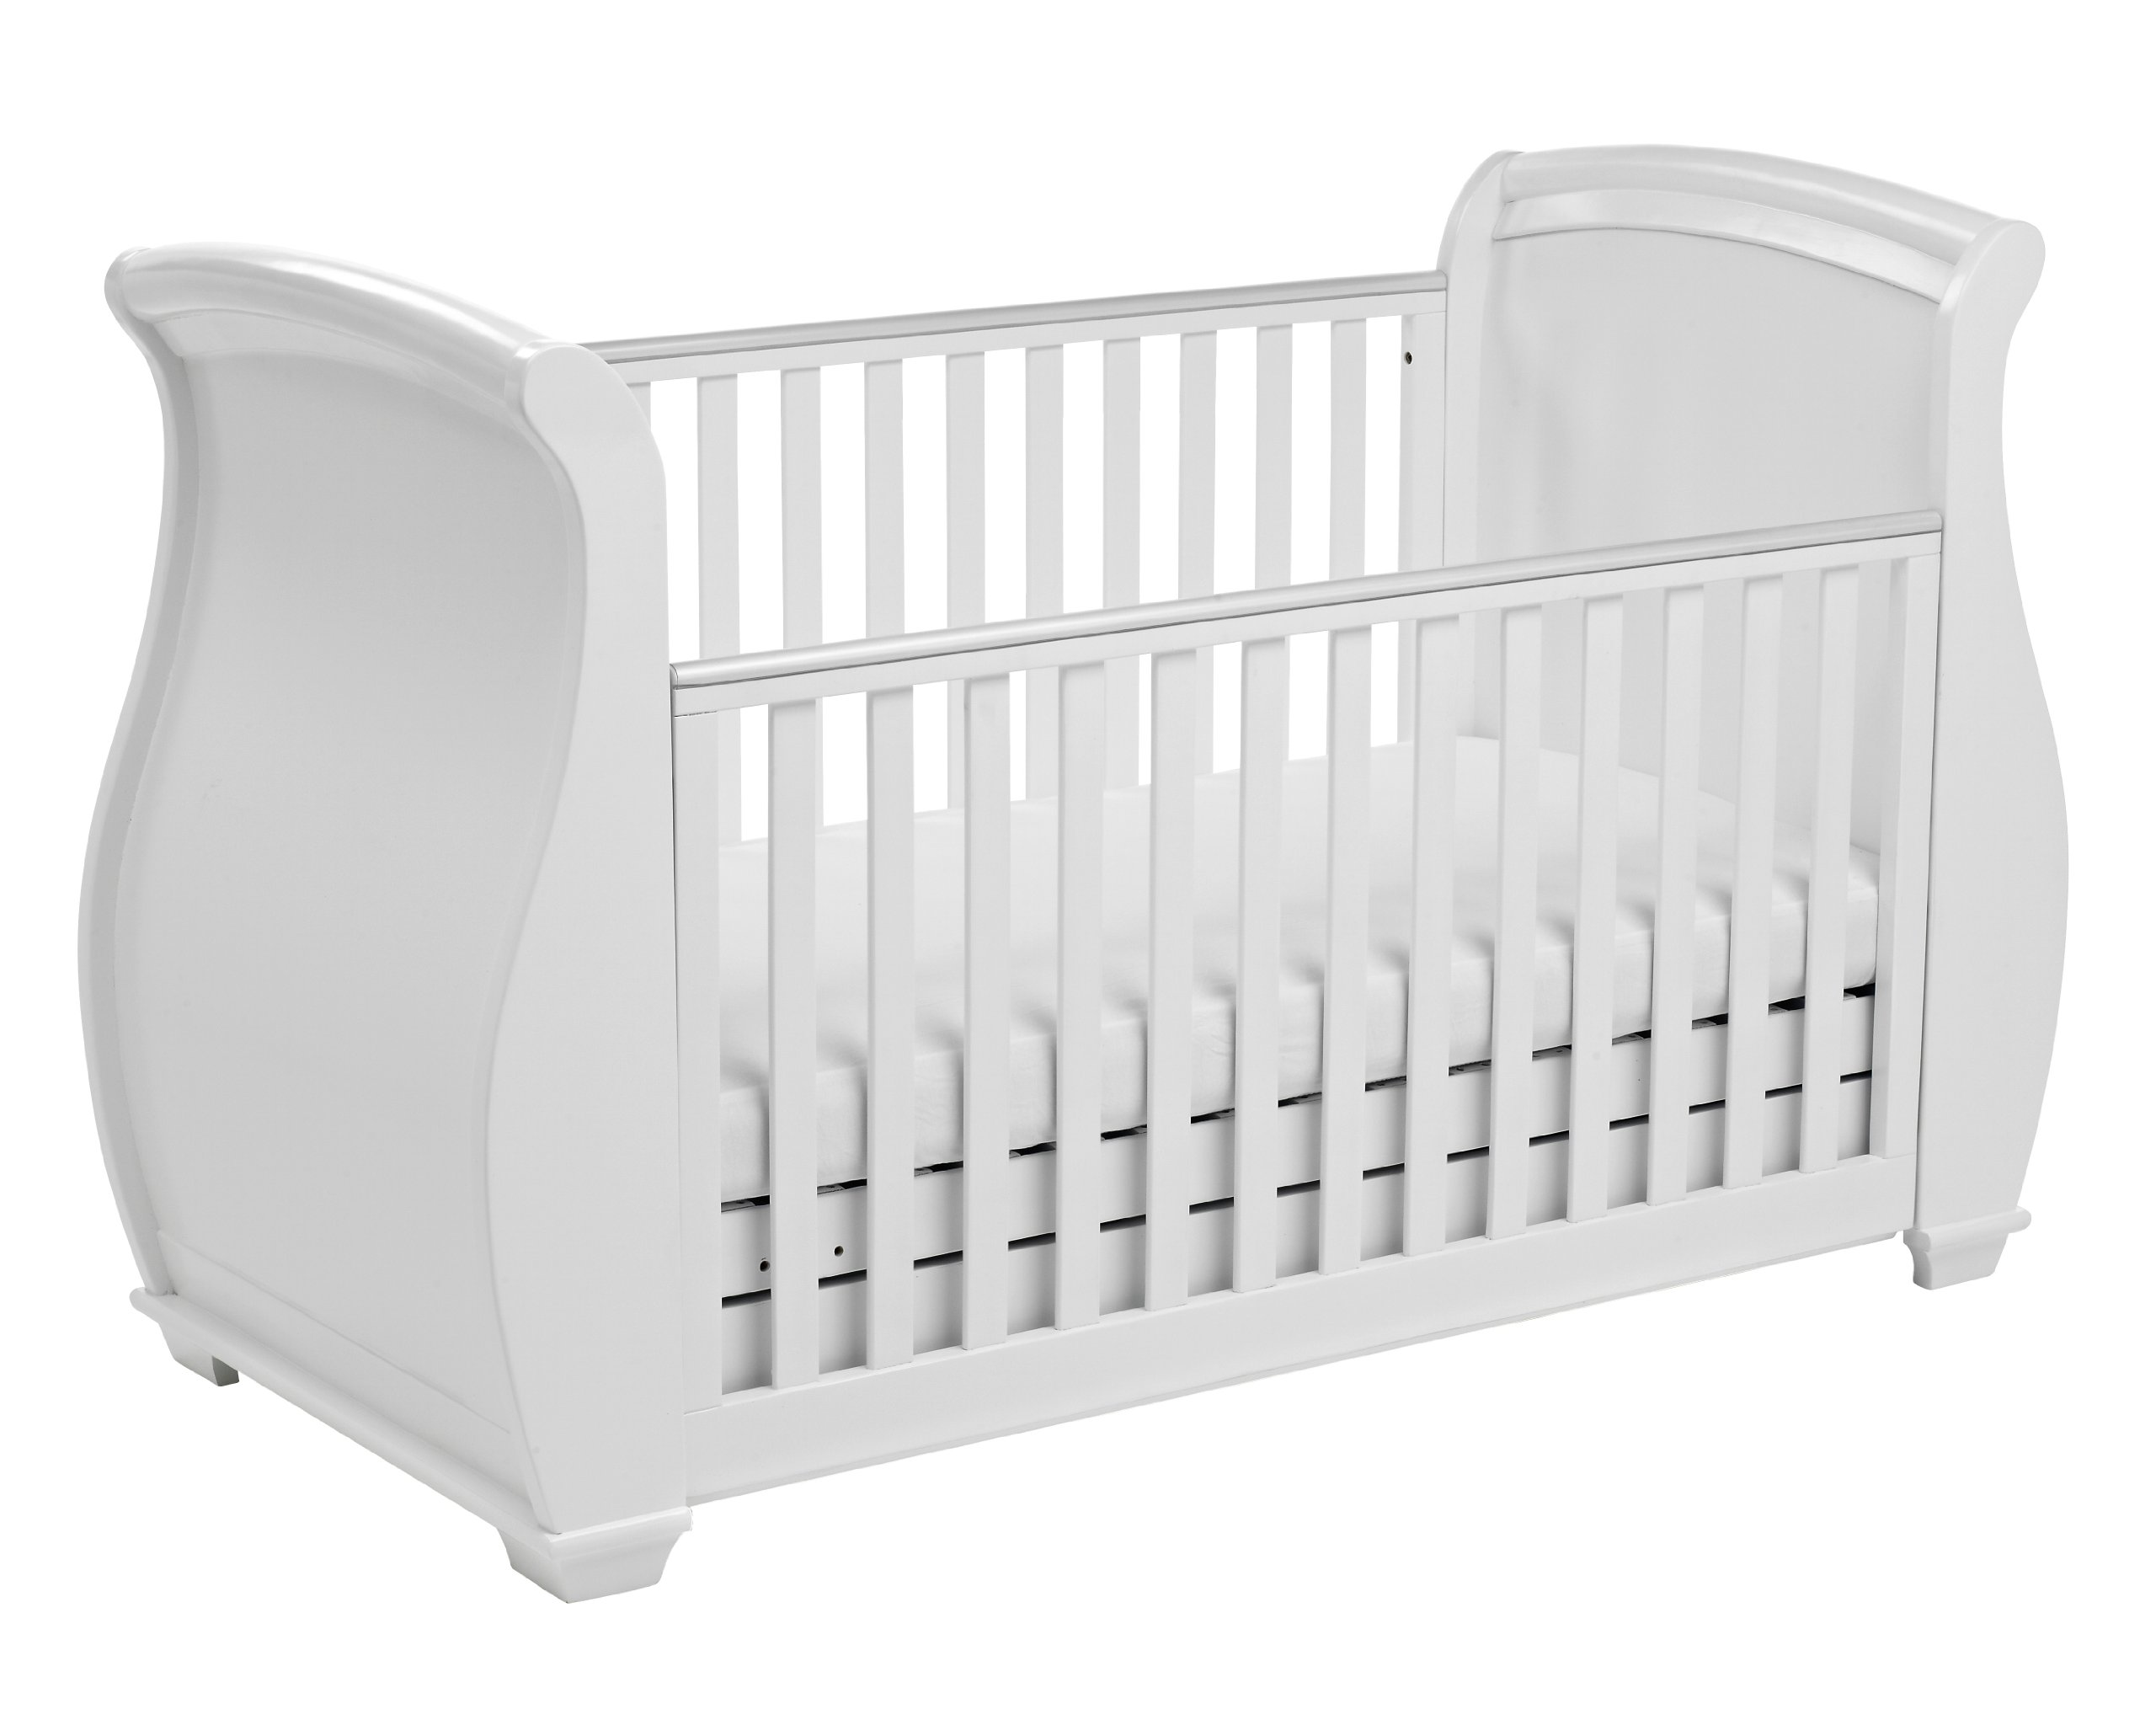 Babymore Bel Sleigh Cot Bed Dropside with Drawer (White)  Magnificent sleigh with appealing look of grandeur and solidity. Easily convert to junior bed/sofa/day bed, Meet British and European safety standards Single handed drop side mechanism allow easy access to your baby. 4